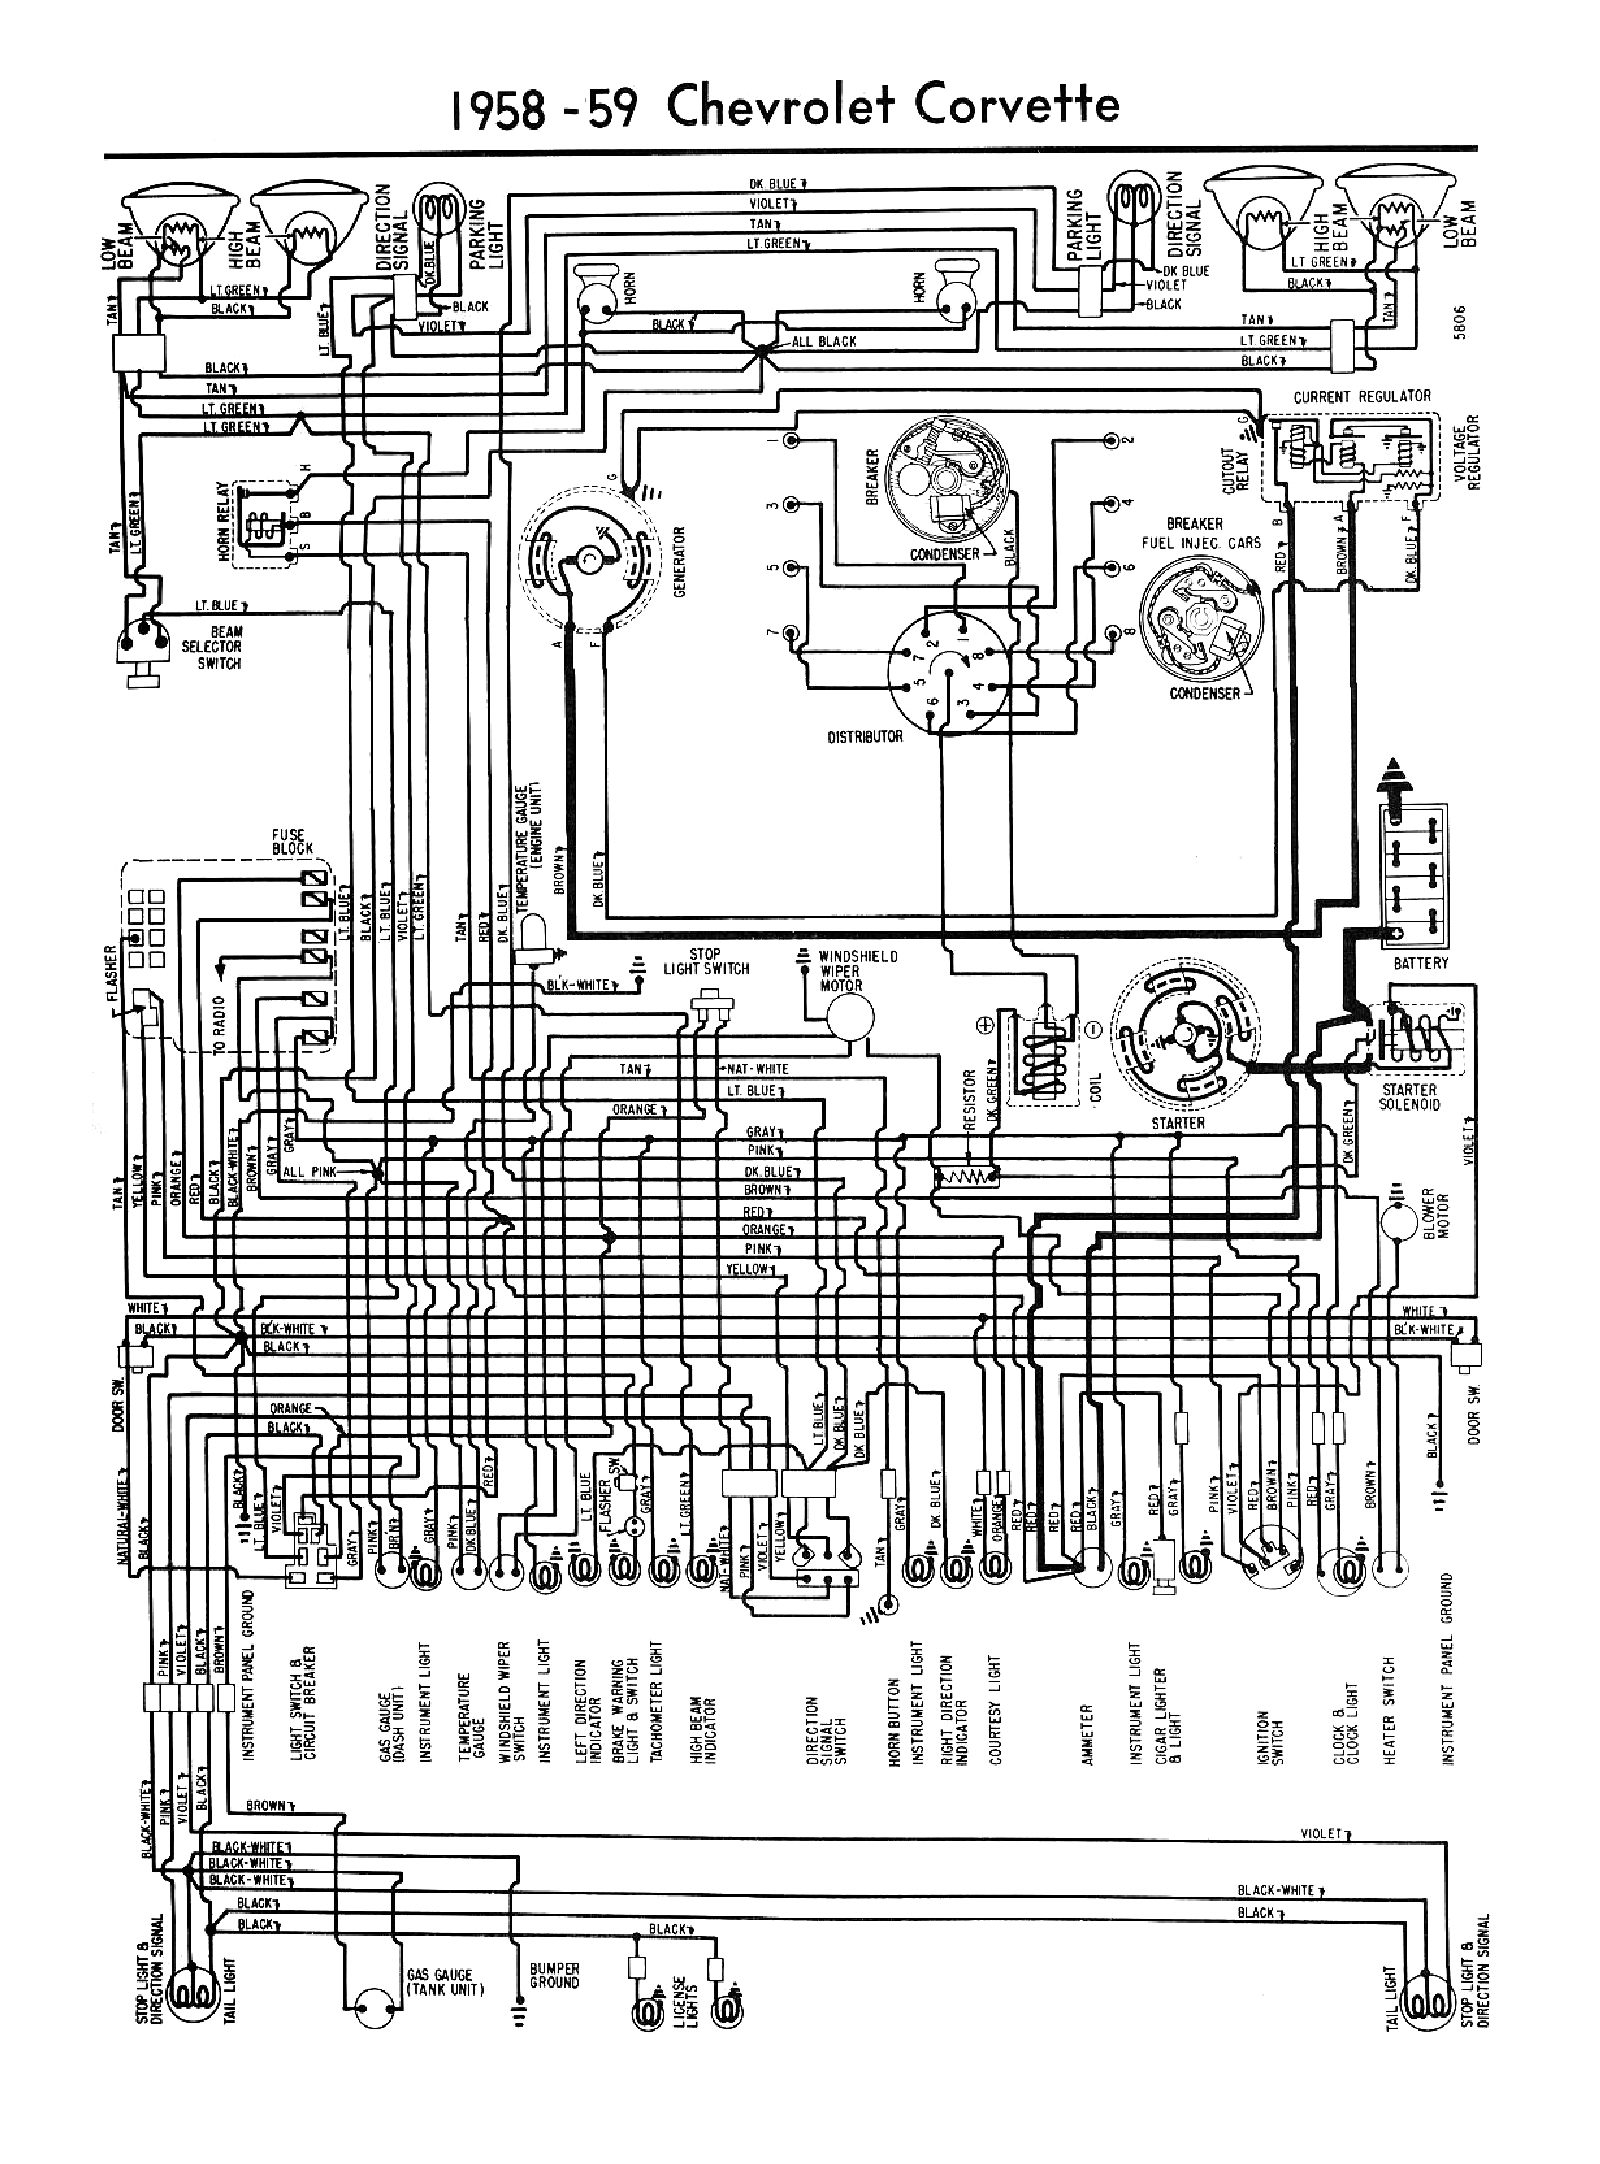 1958 Harley Wiring Diagram Schematic 72 Oldsmobile Corvette